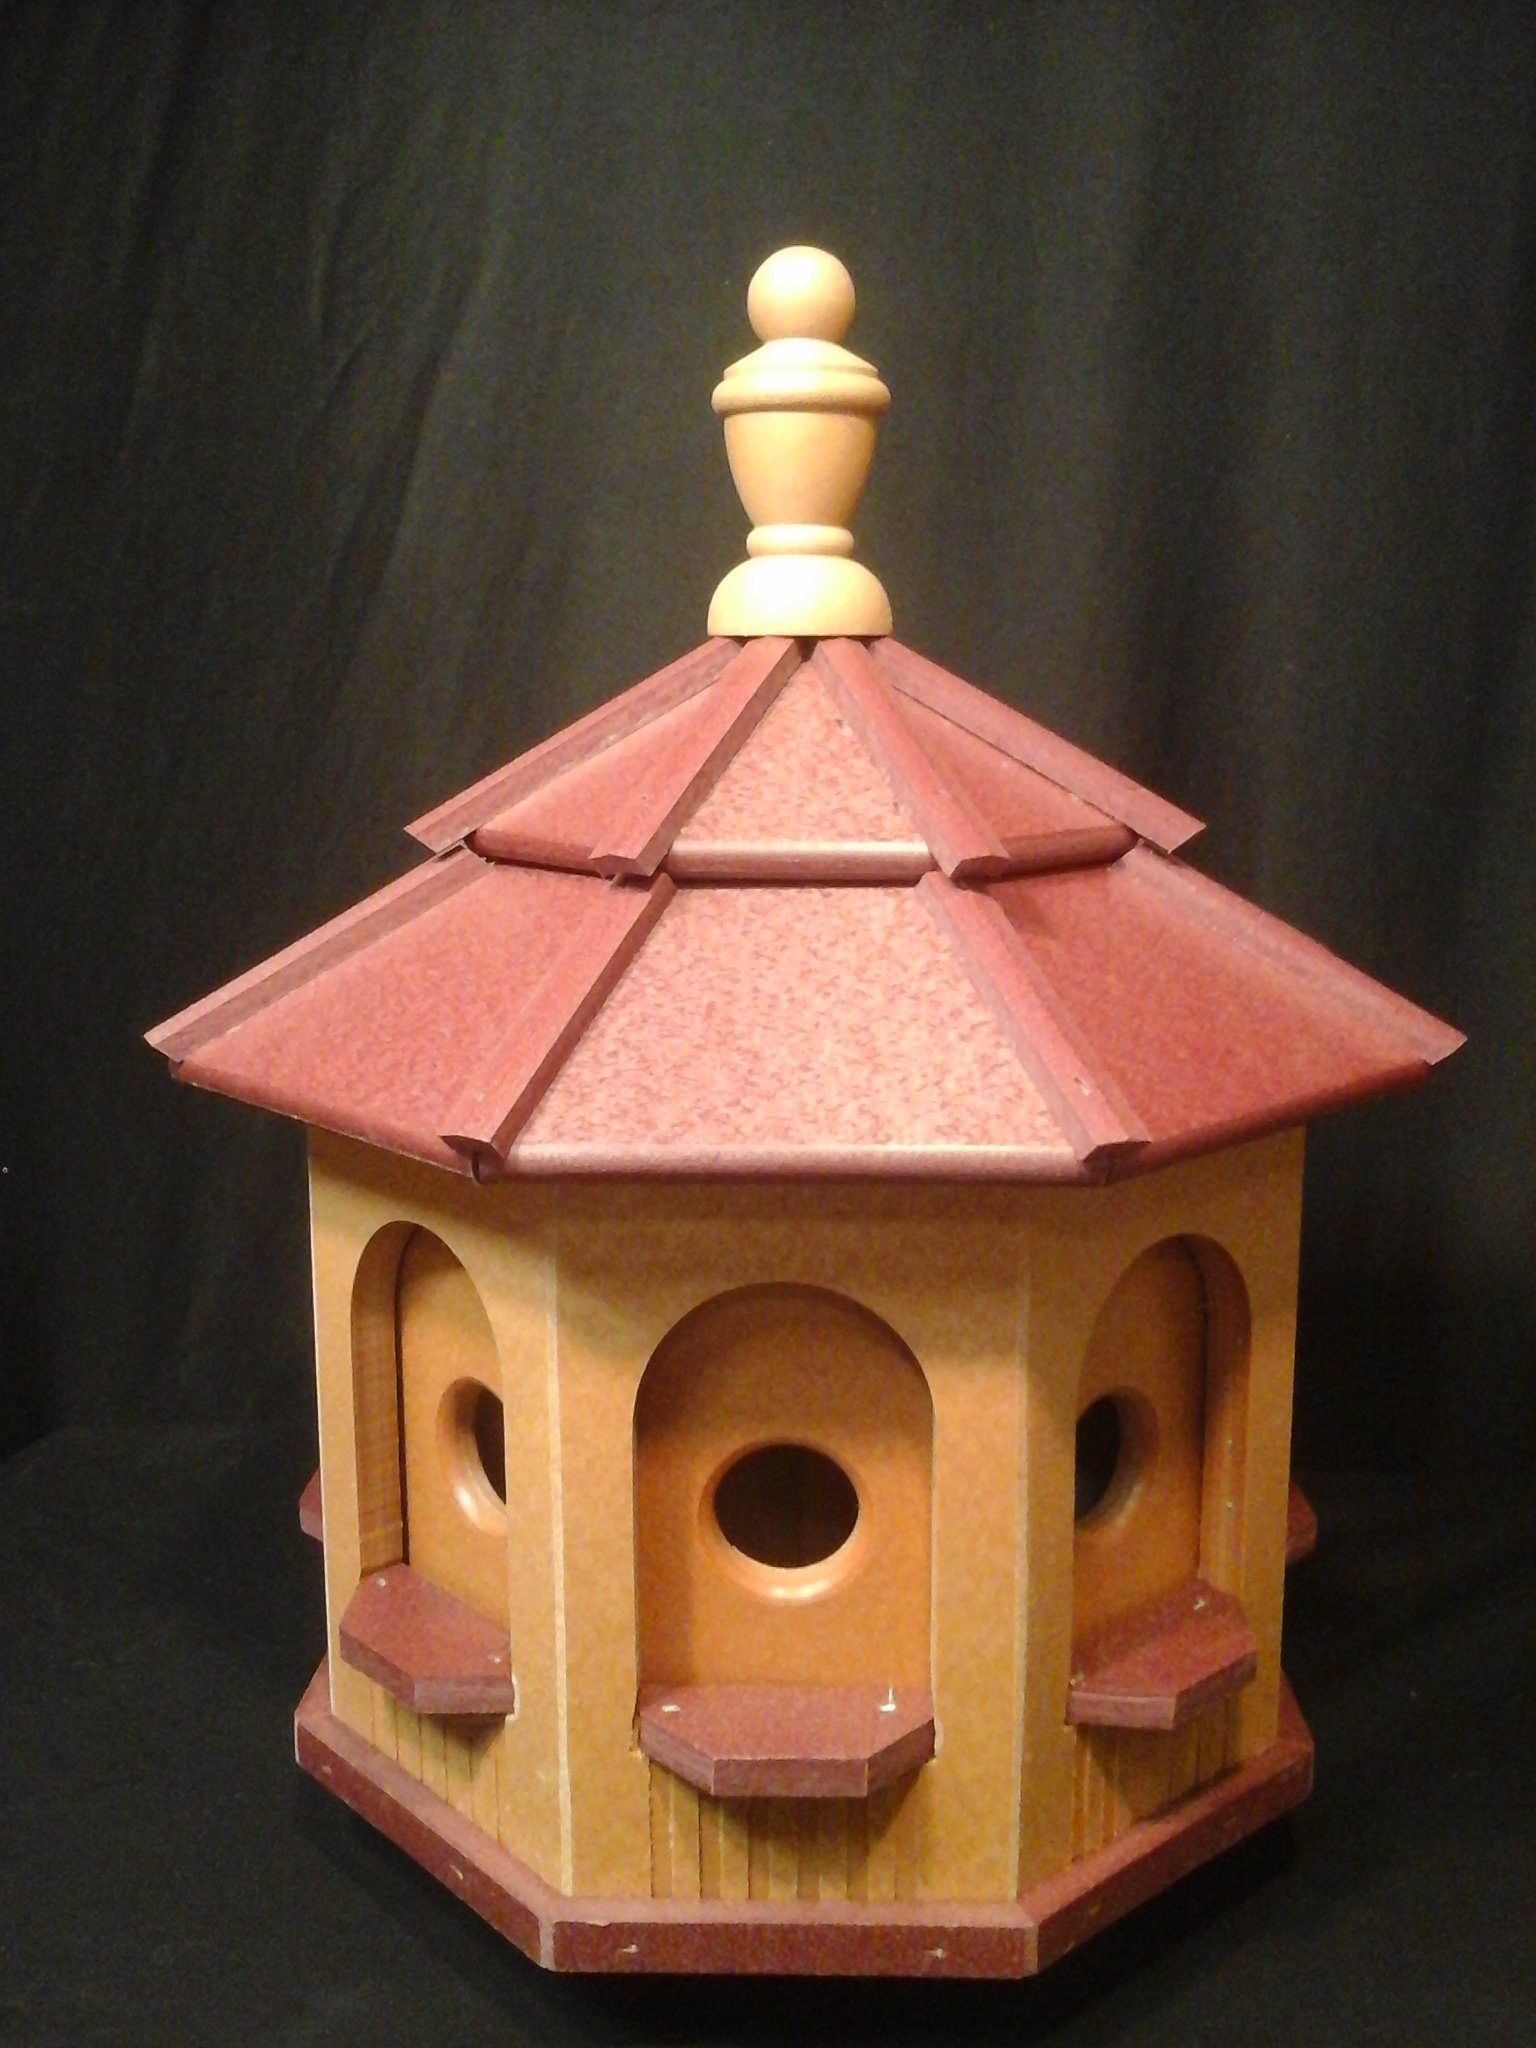 Medium Vinyl Birdhouse Amish Homemade Handmade Handcrafted Cedar & Red Roof